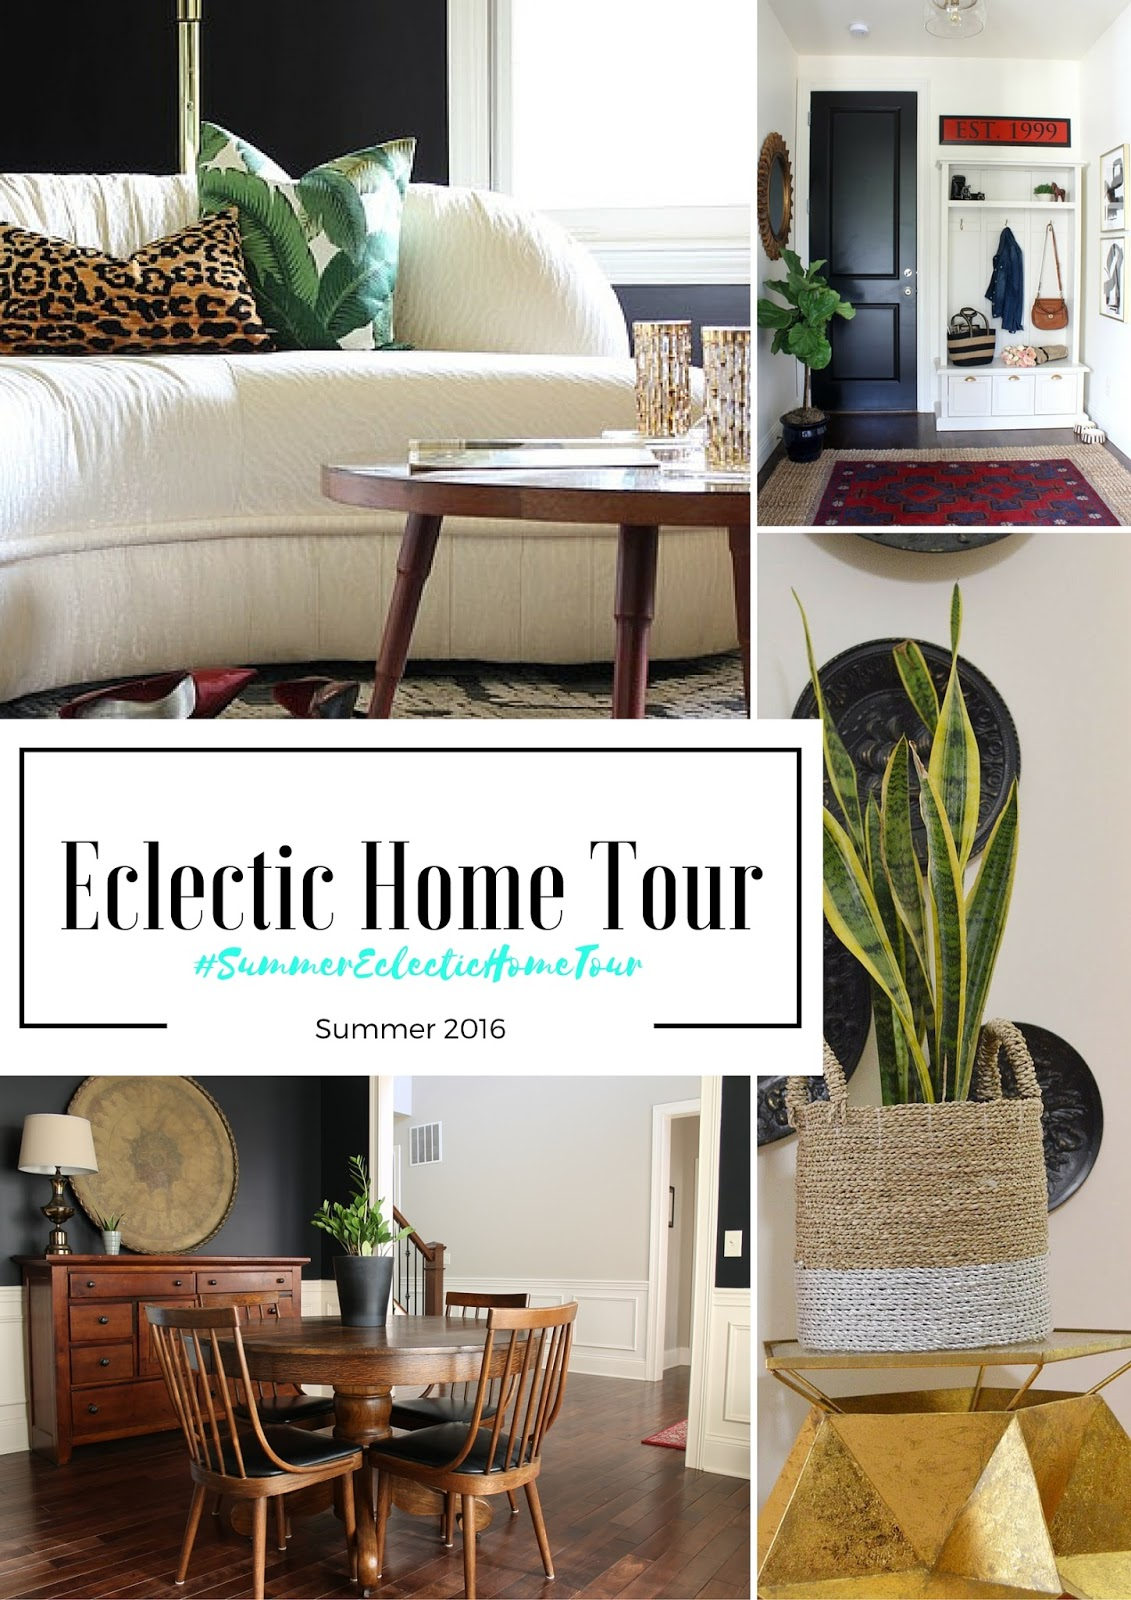 Eclectic decor, summer eclectic home tour, domicile 37, vintage decor, edgy home decor, minted curtains, rental living, rental DIY